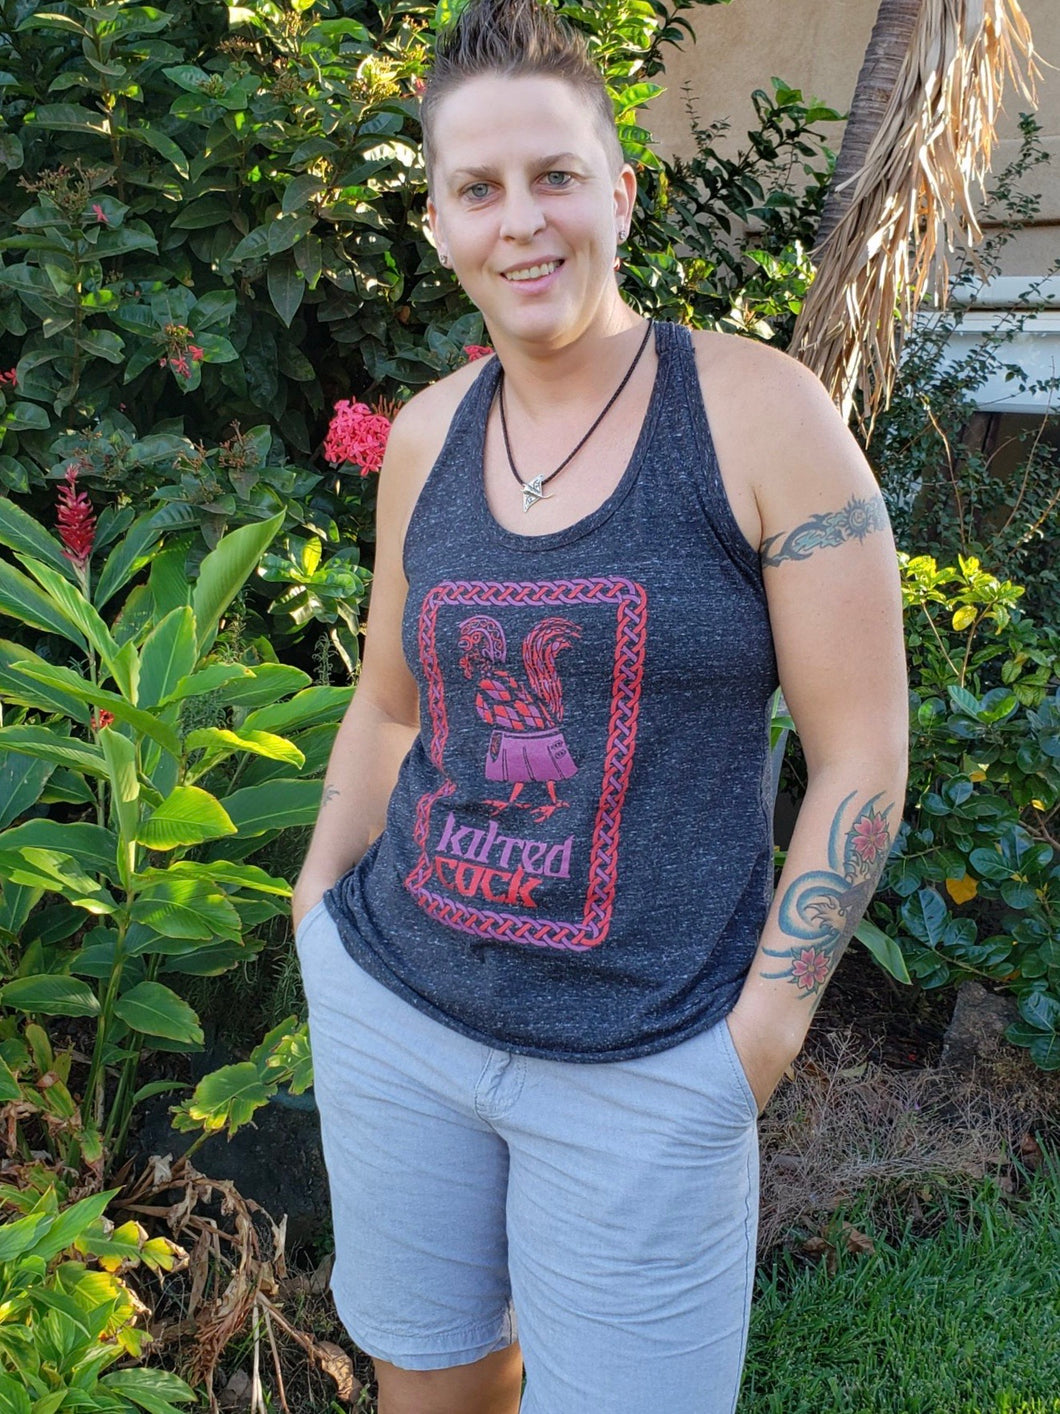 Kilted Cock Tank Top for Women (Twist-Back, Heather Grey)